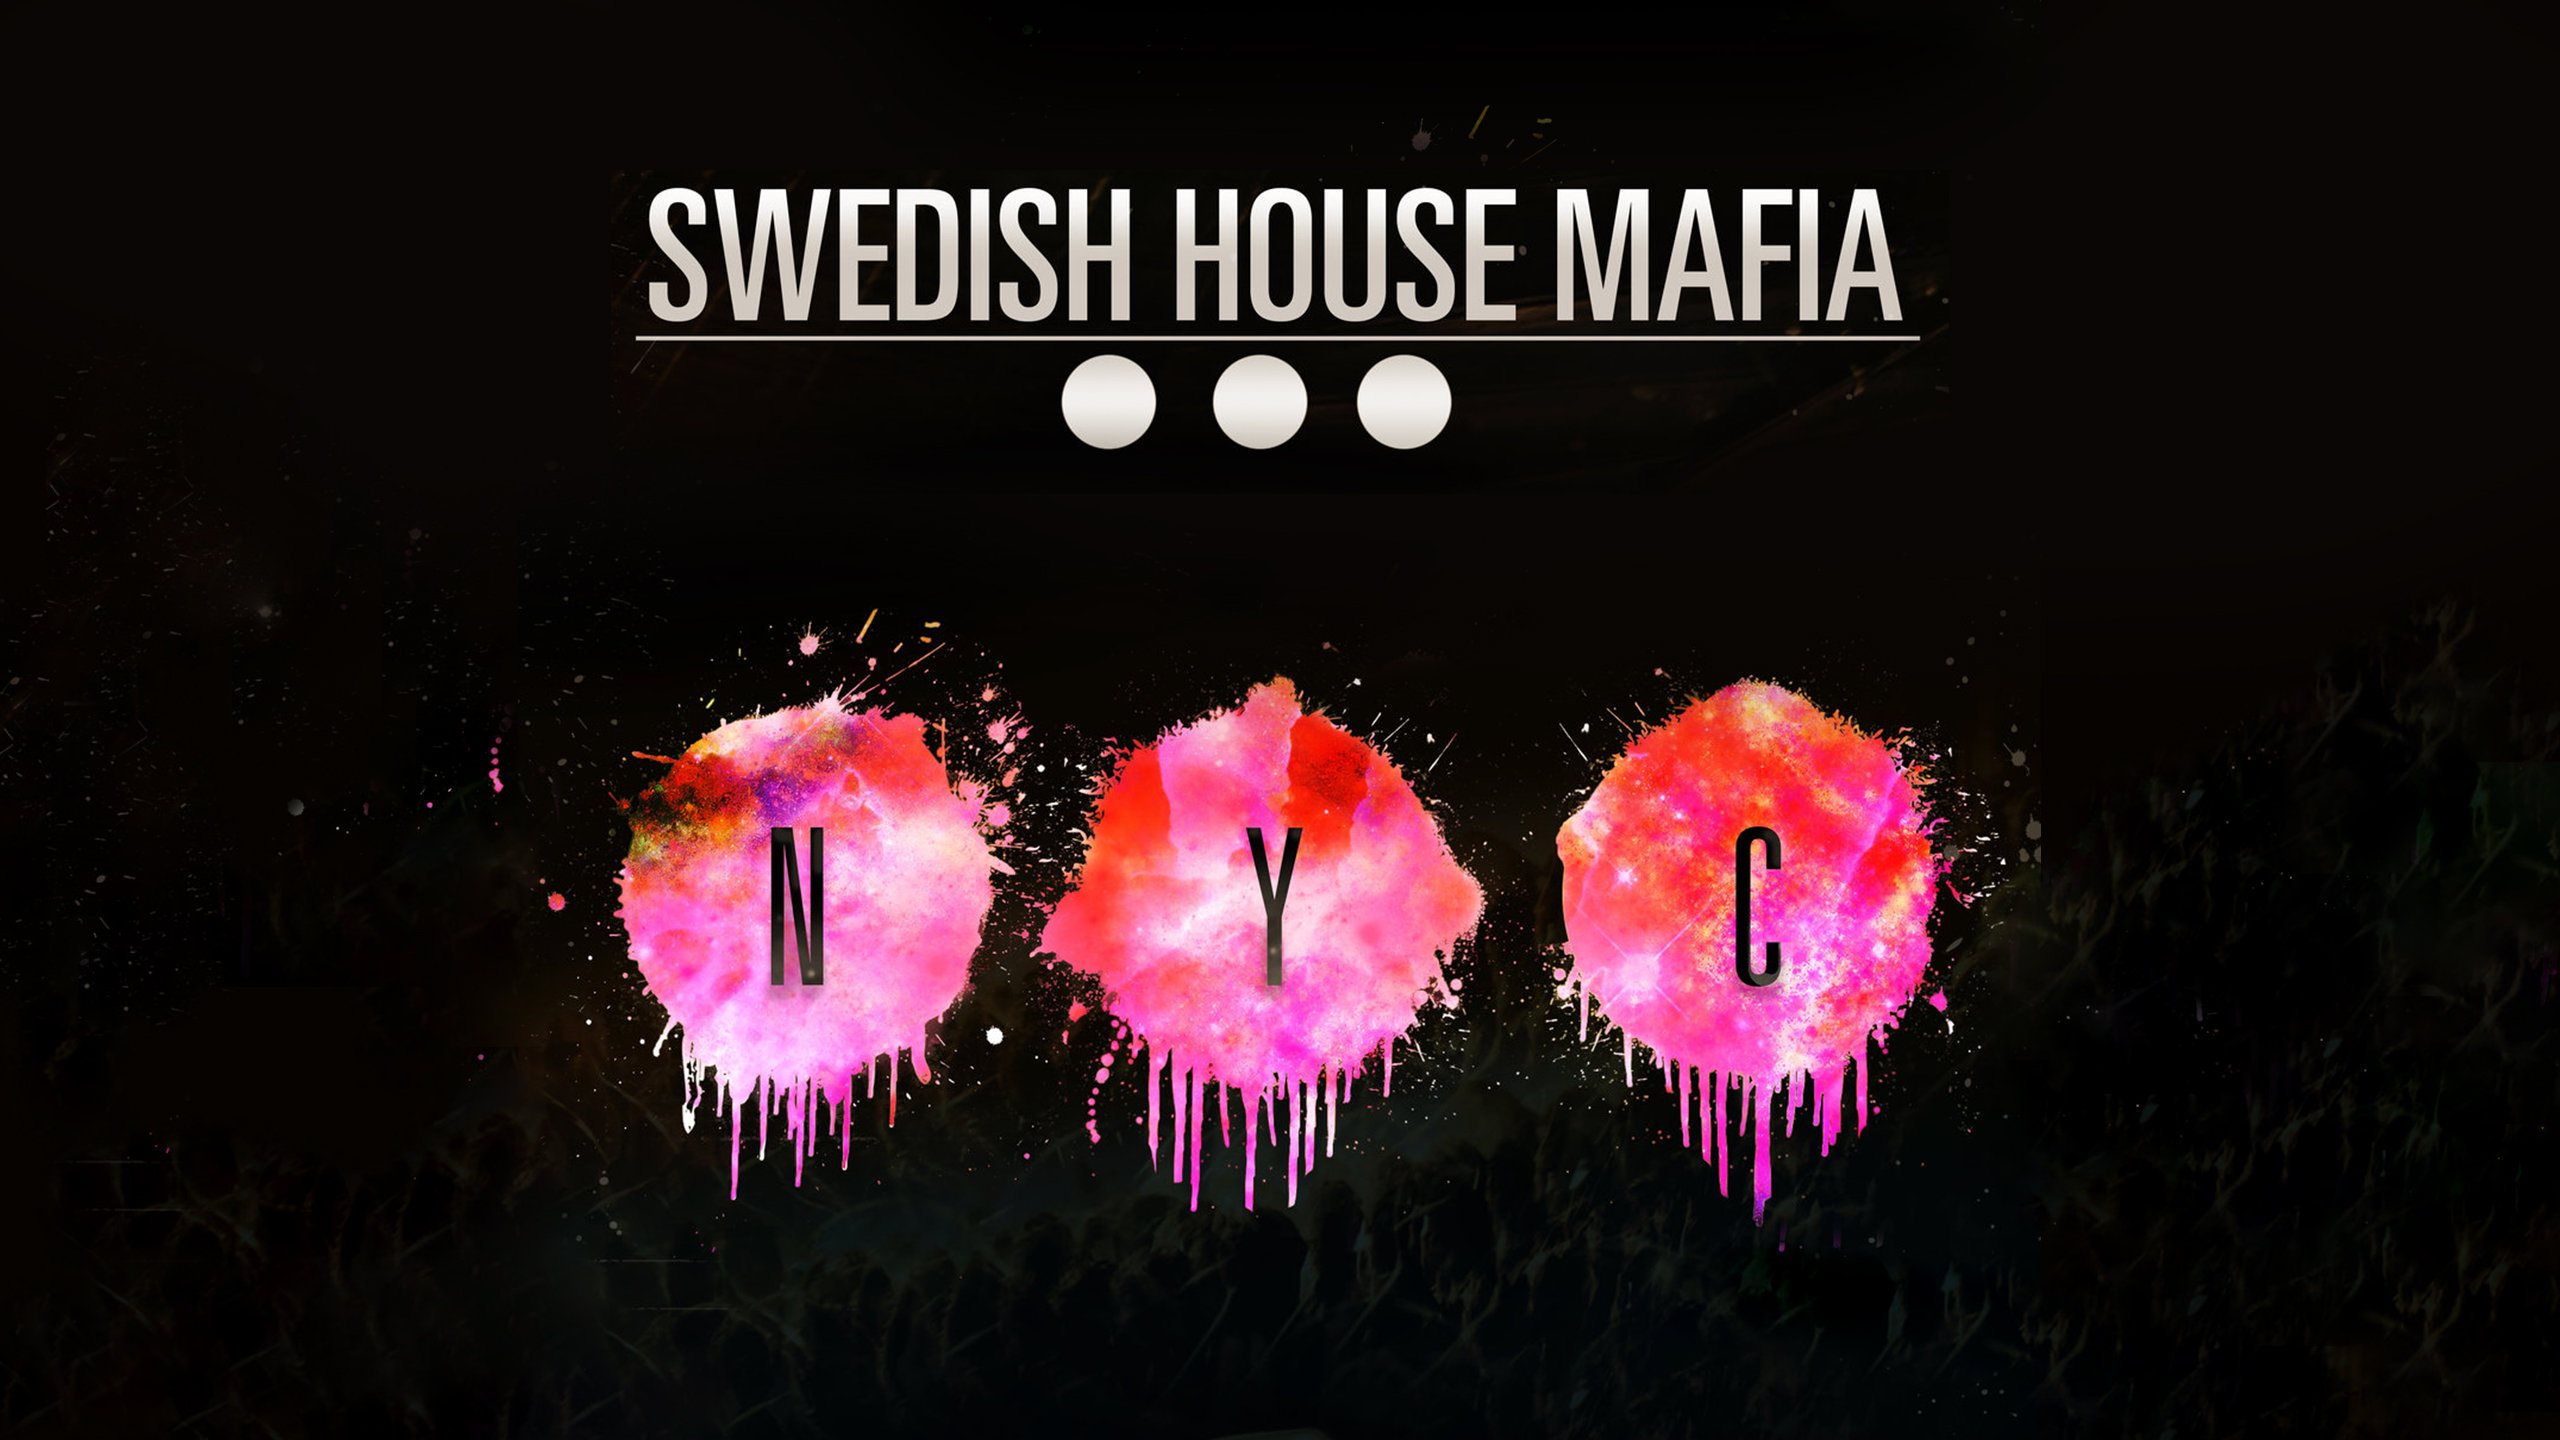 Swedish House Mafia Wallpaper